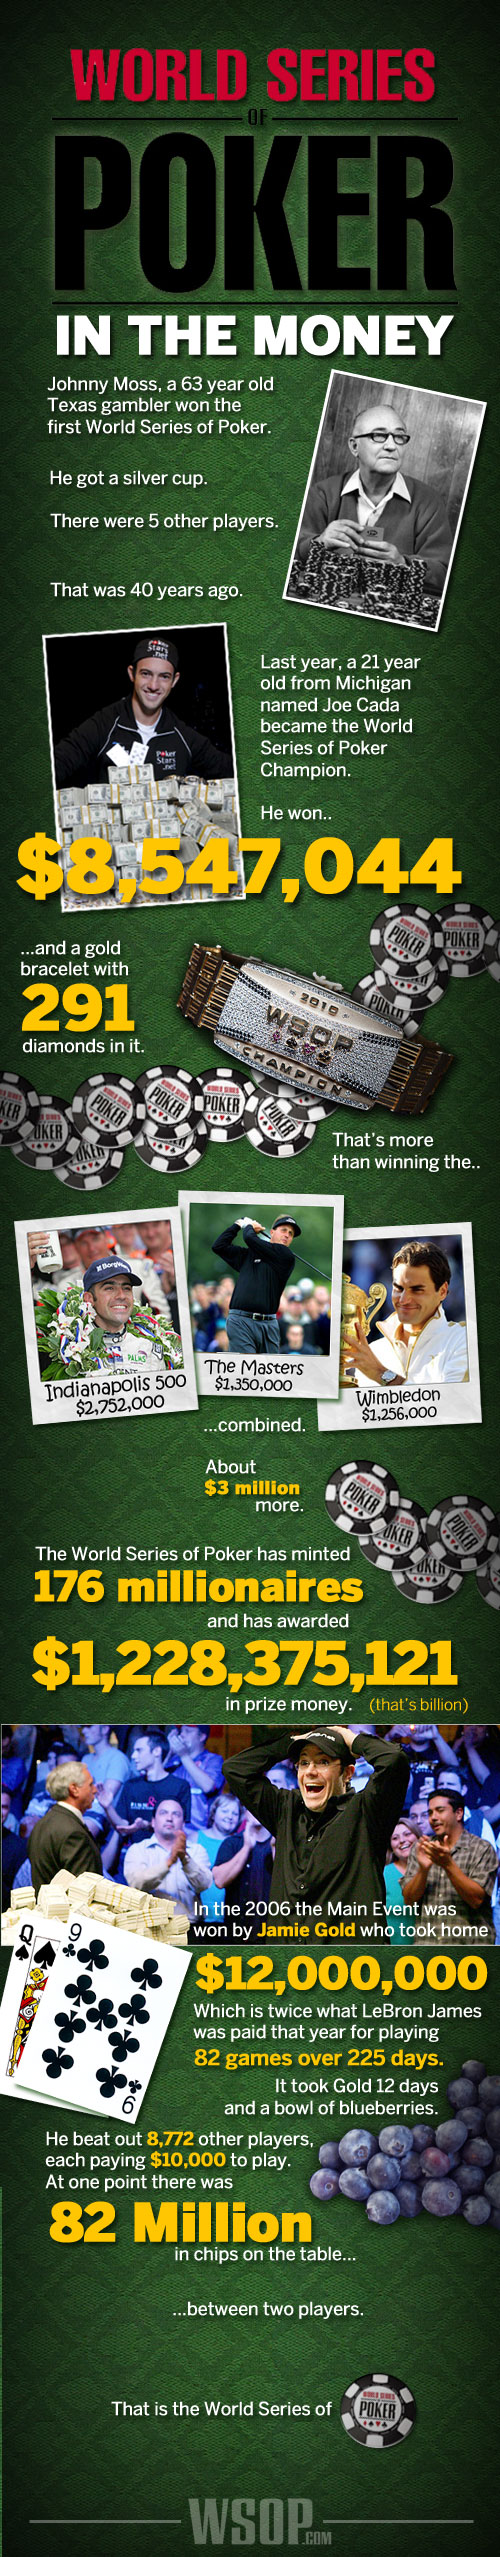 World Series of Poker: In The Money